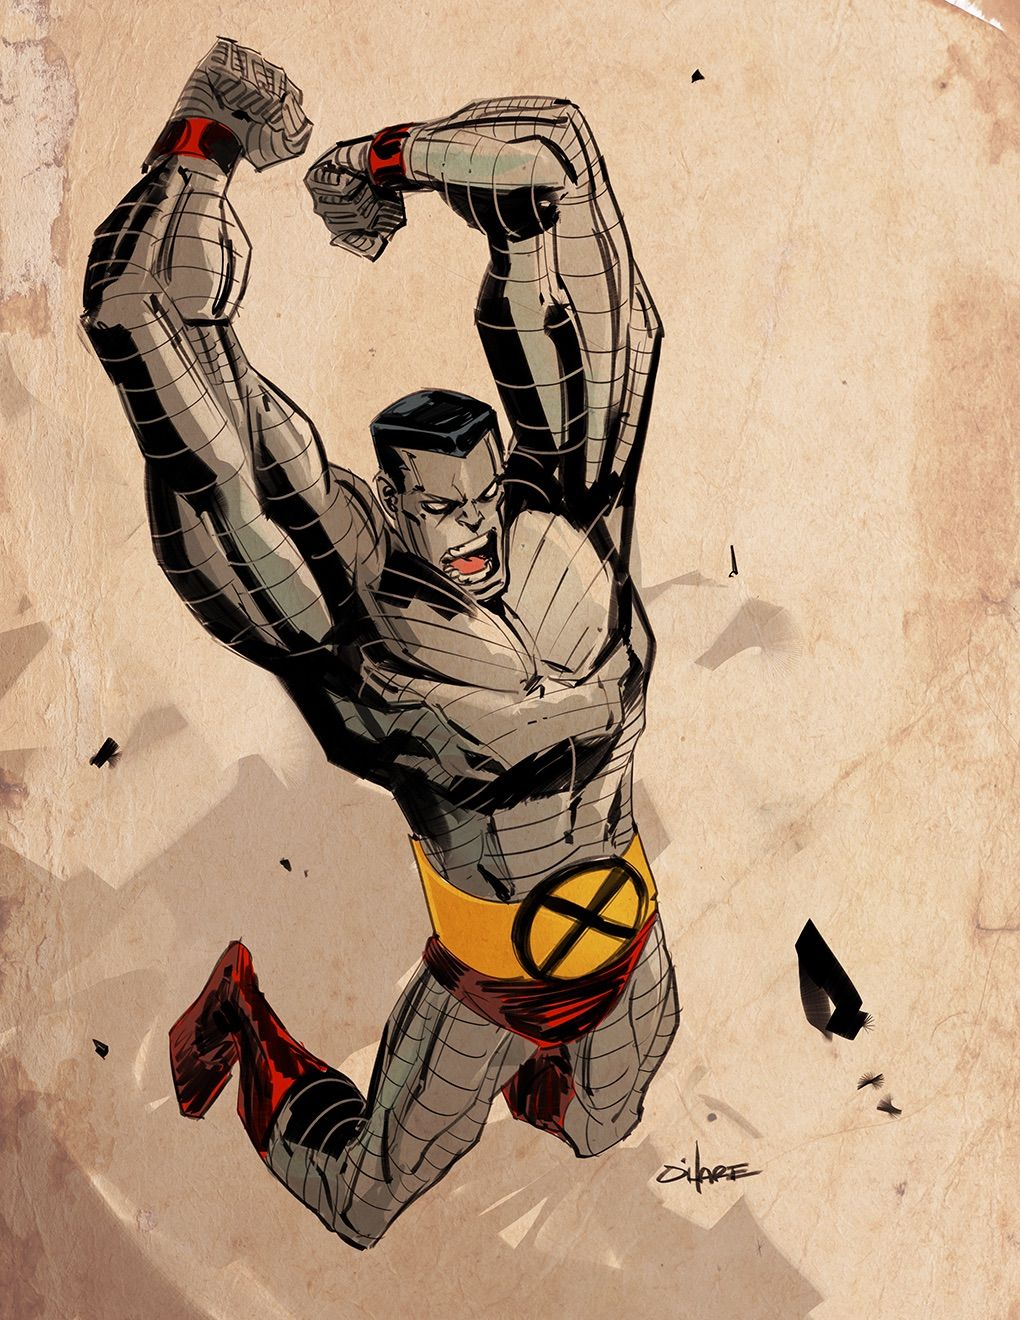 Colossus by Michael O'Hare